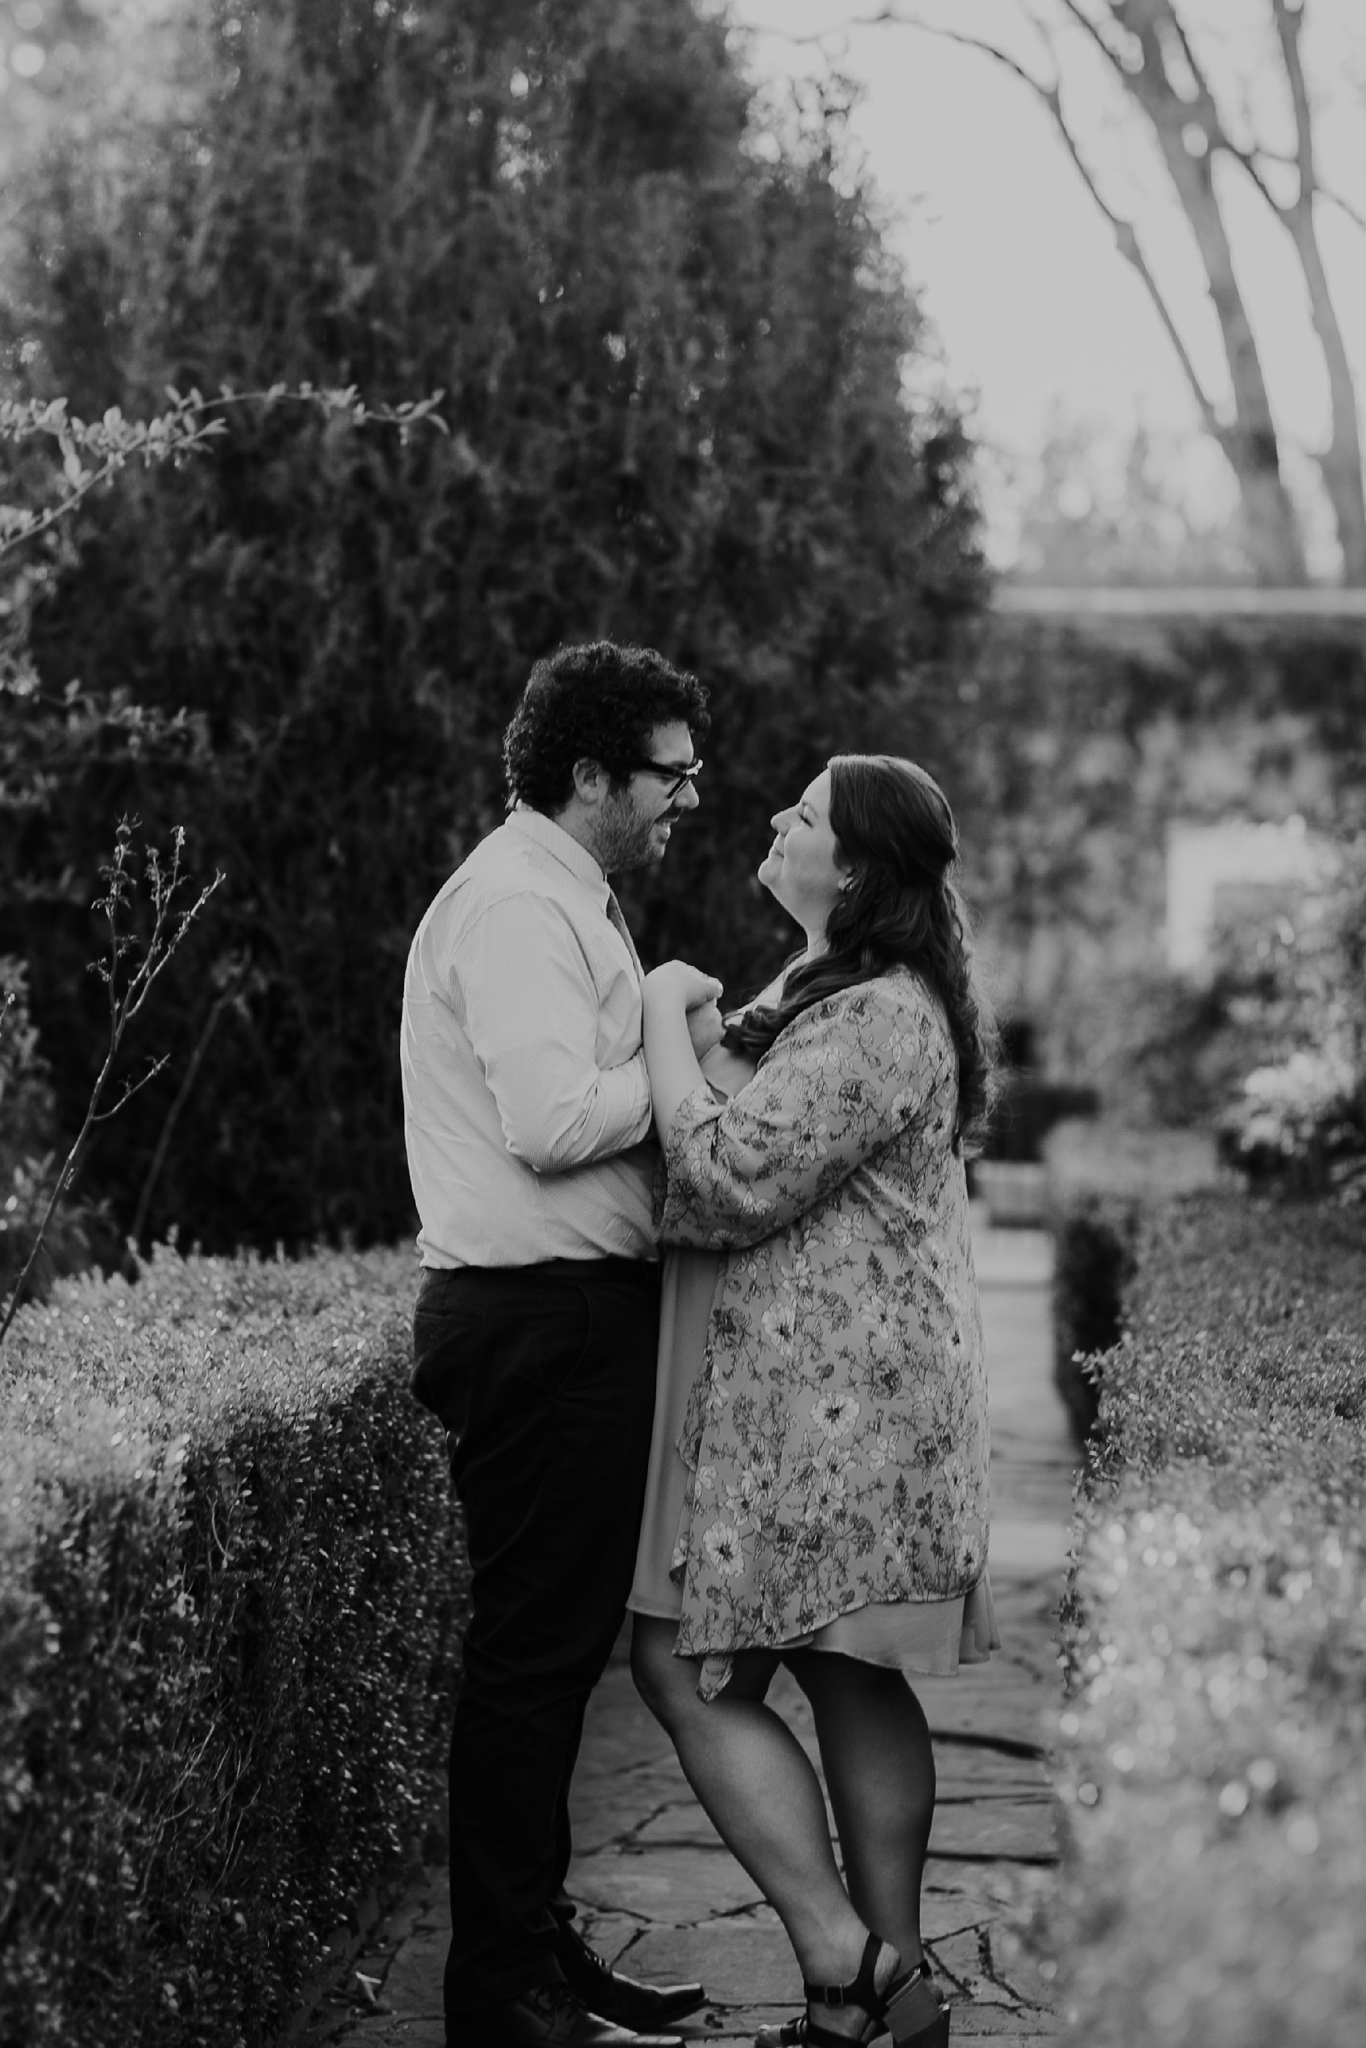 Alicia+lucia+photography+-+albuquerque+wedding+photographer+-+santa+fe+wedding+photography+-+new+mexico+wedding+photographer+-+new+mexico+engagement+-+los+poblanos+engagement+-+spring+engagement_0020.jpg